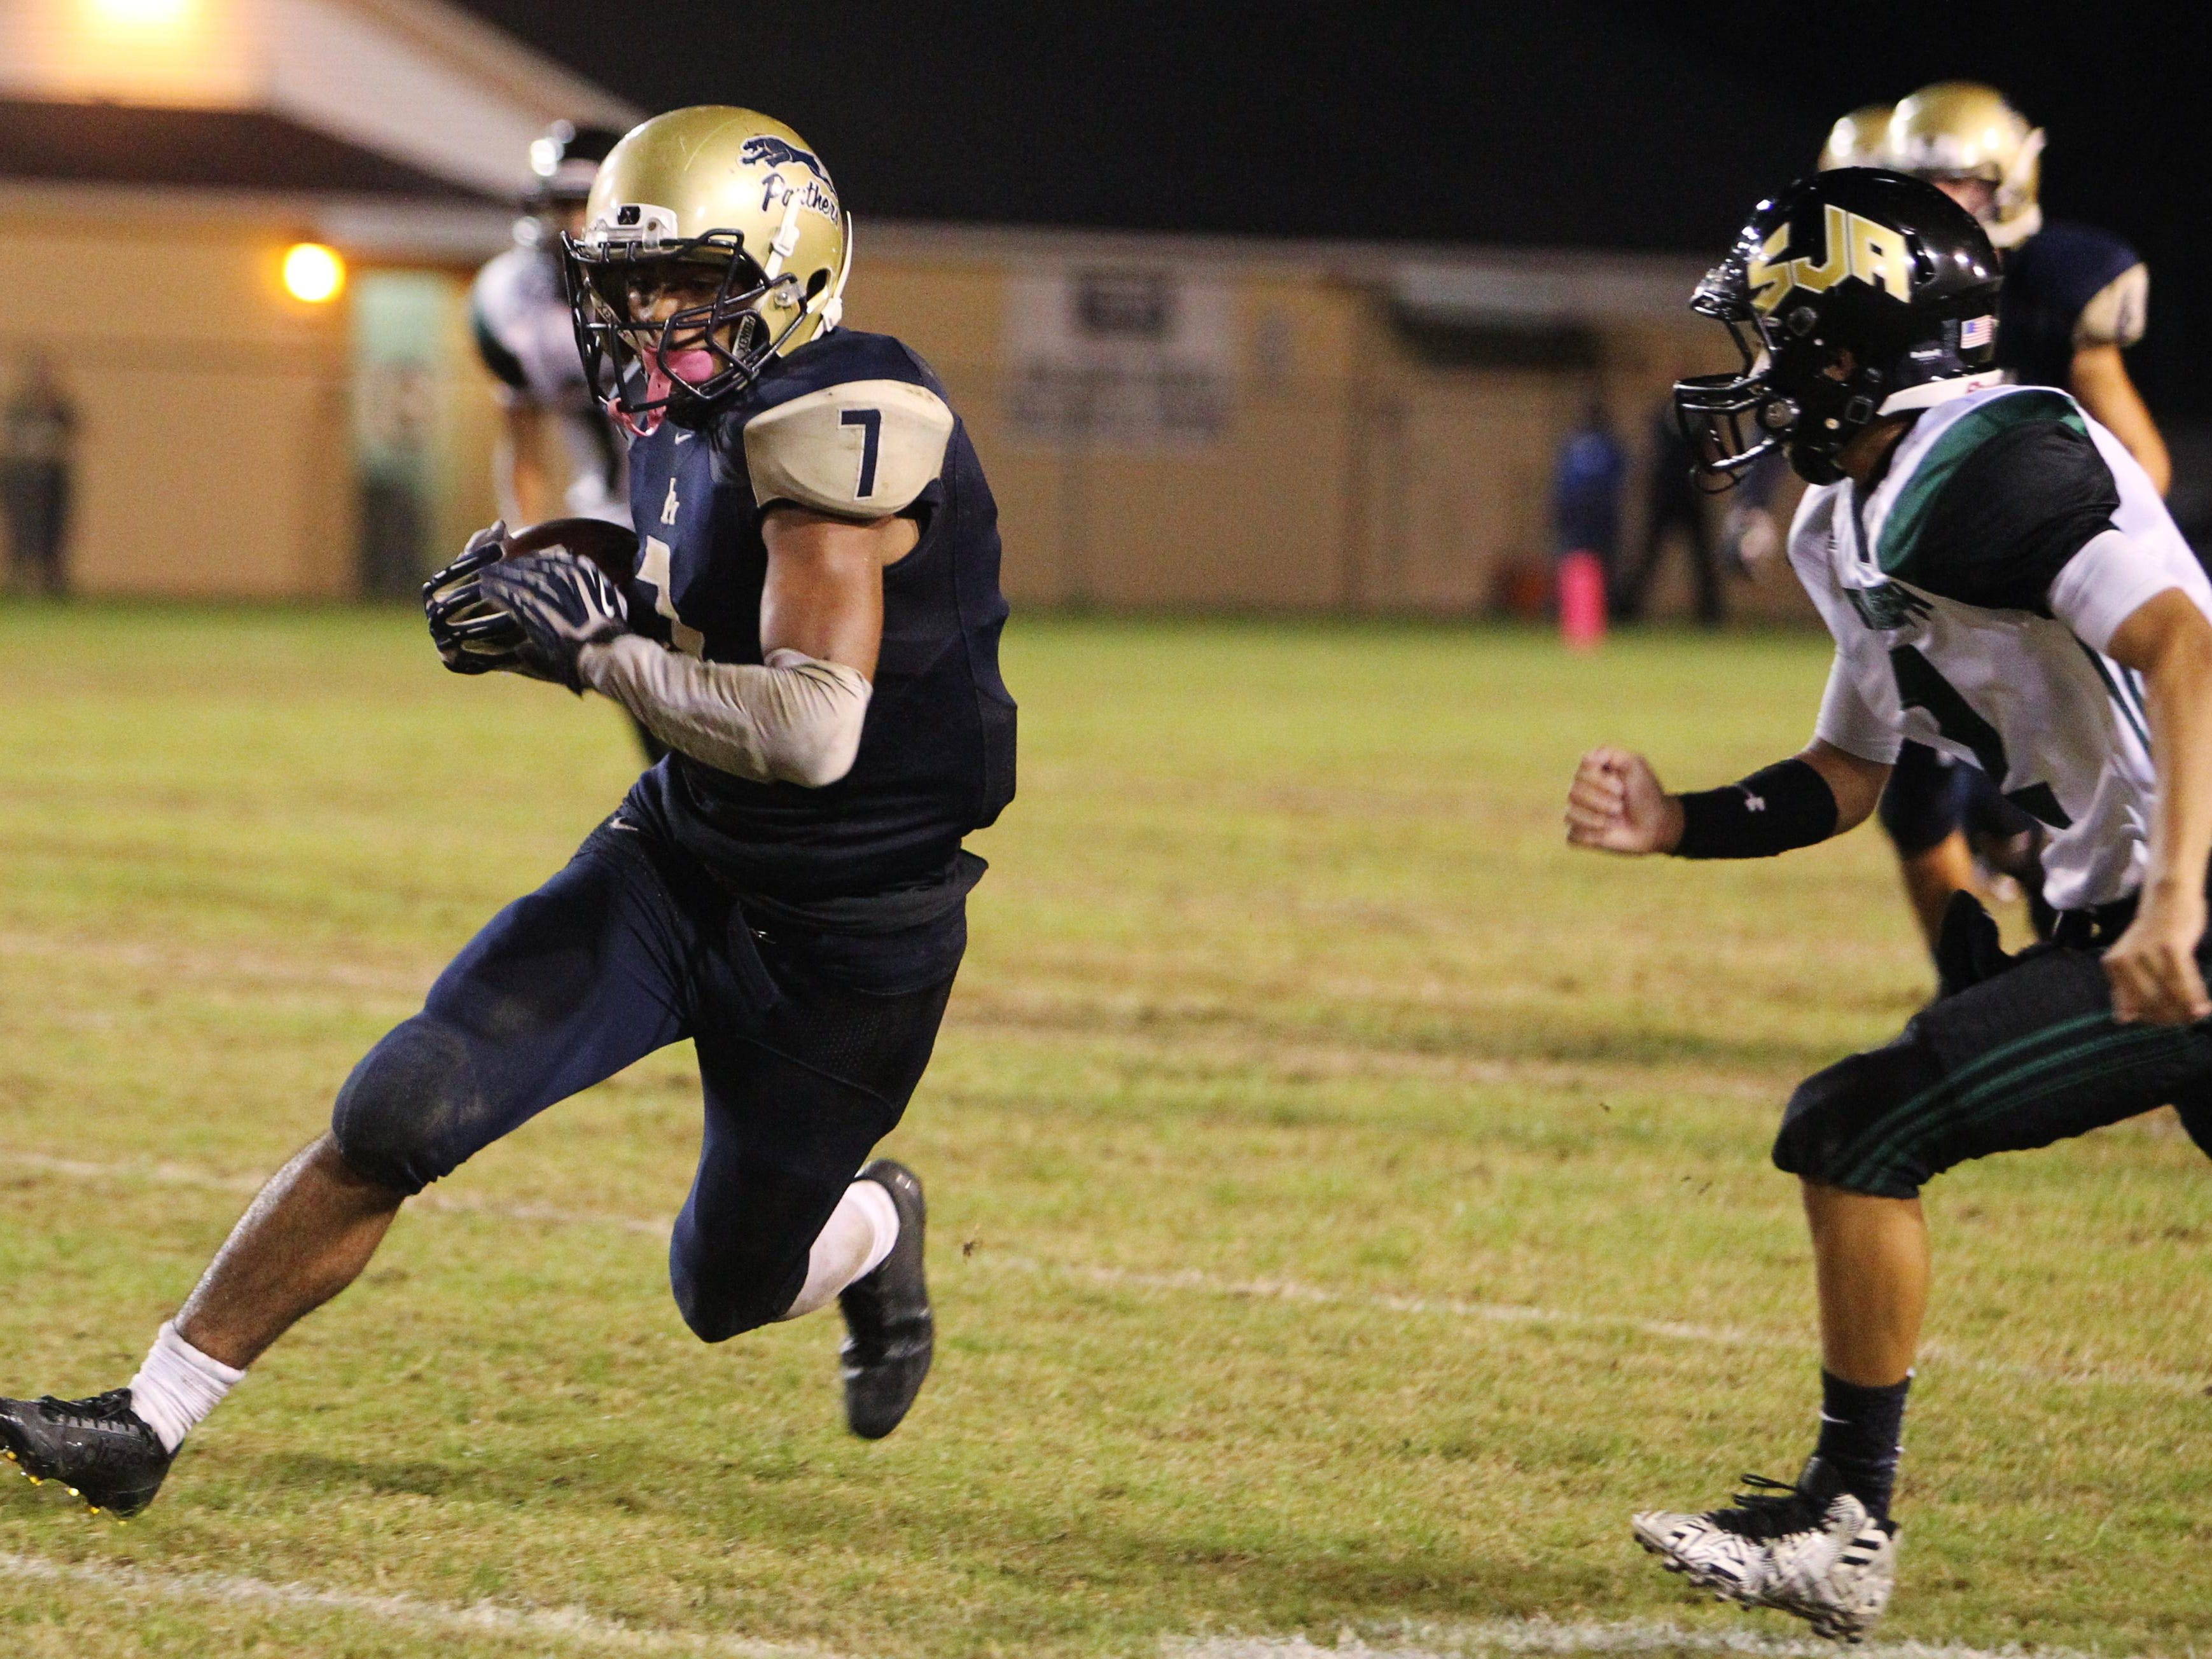 John Paul II's Sam Smith sprints away from defenders in the championship game of the North Florida Football Conference at Gene Cox Stadium.